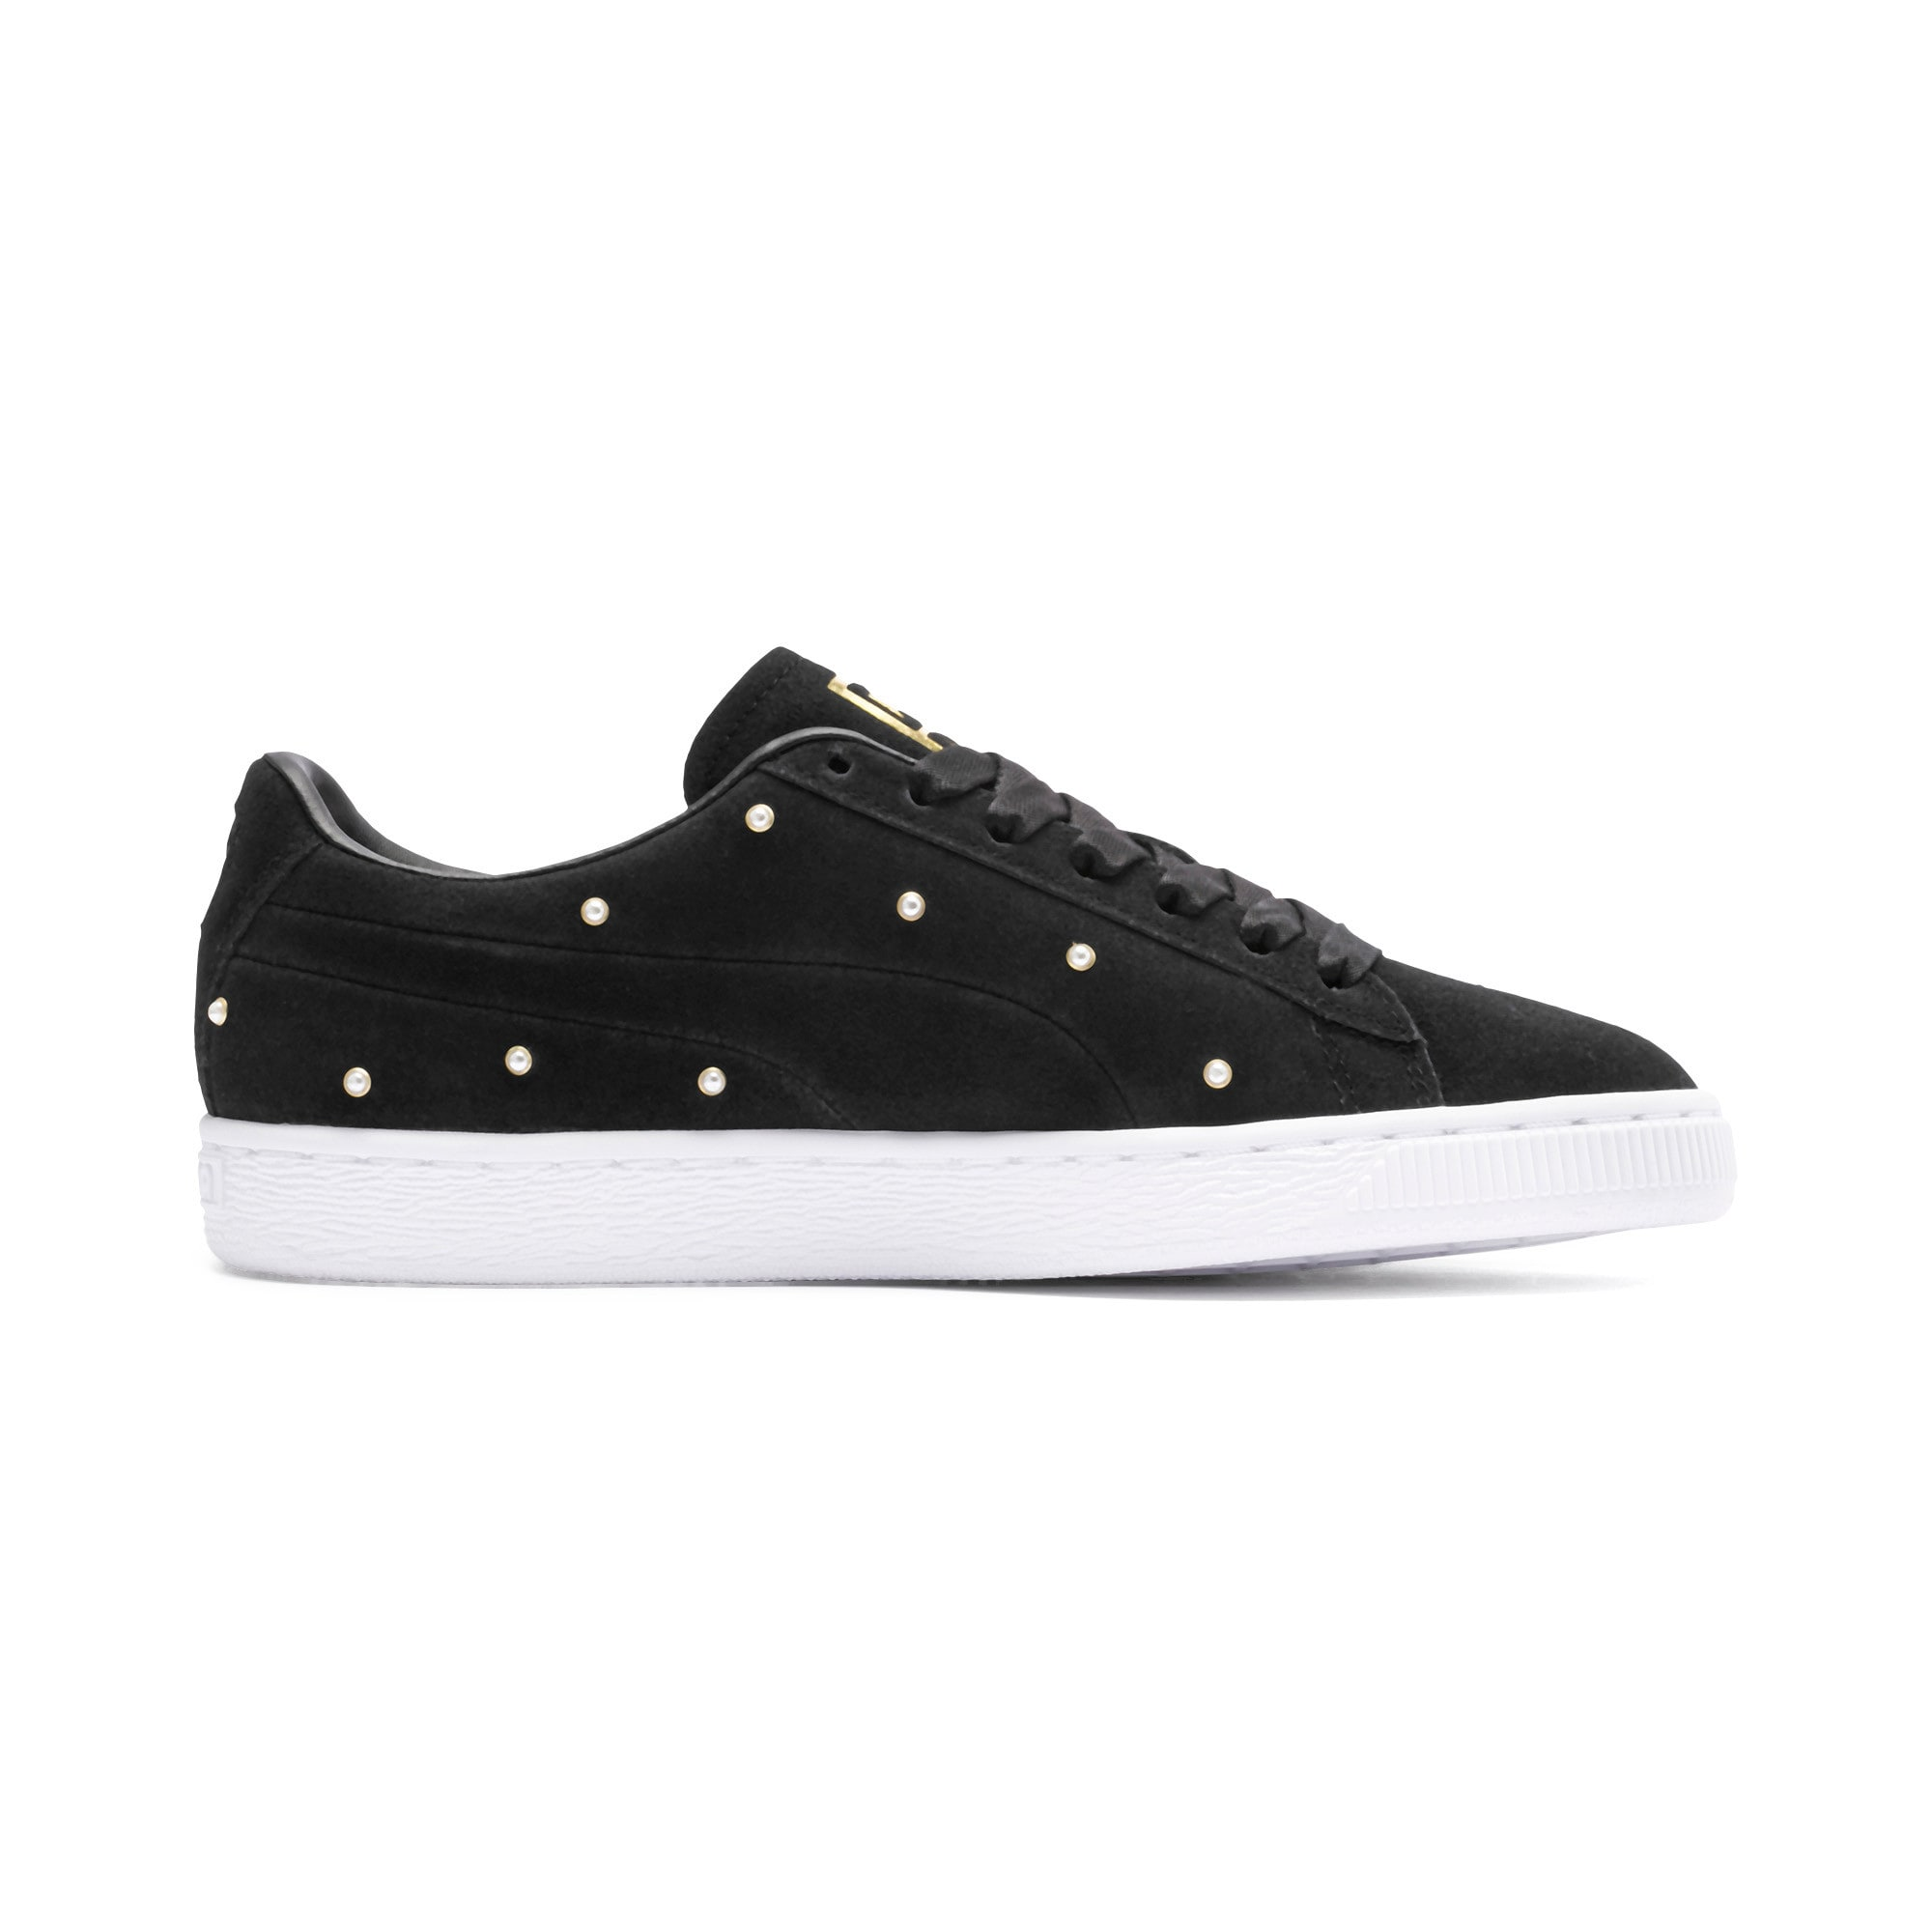 Thumbnail 6 of Suede Pearl Studs Women's Sneakers, Puma Black-Puma Team Gold, medium